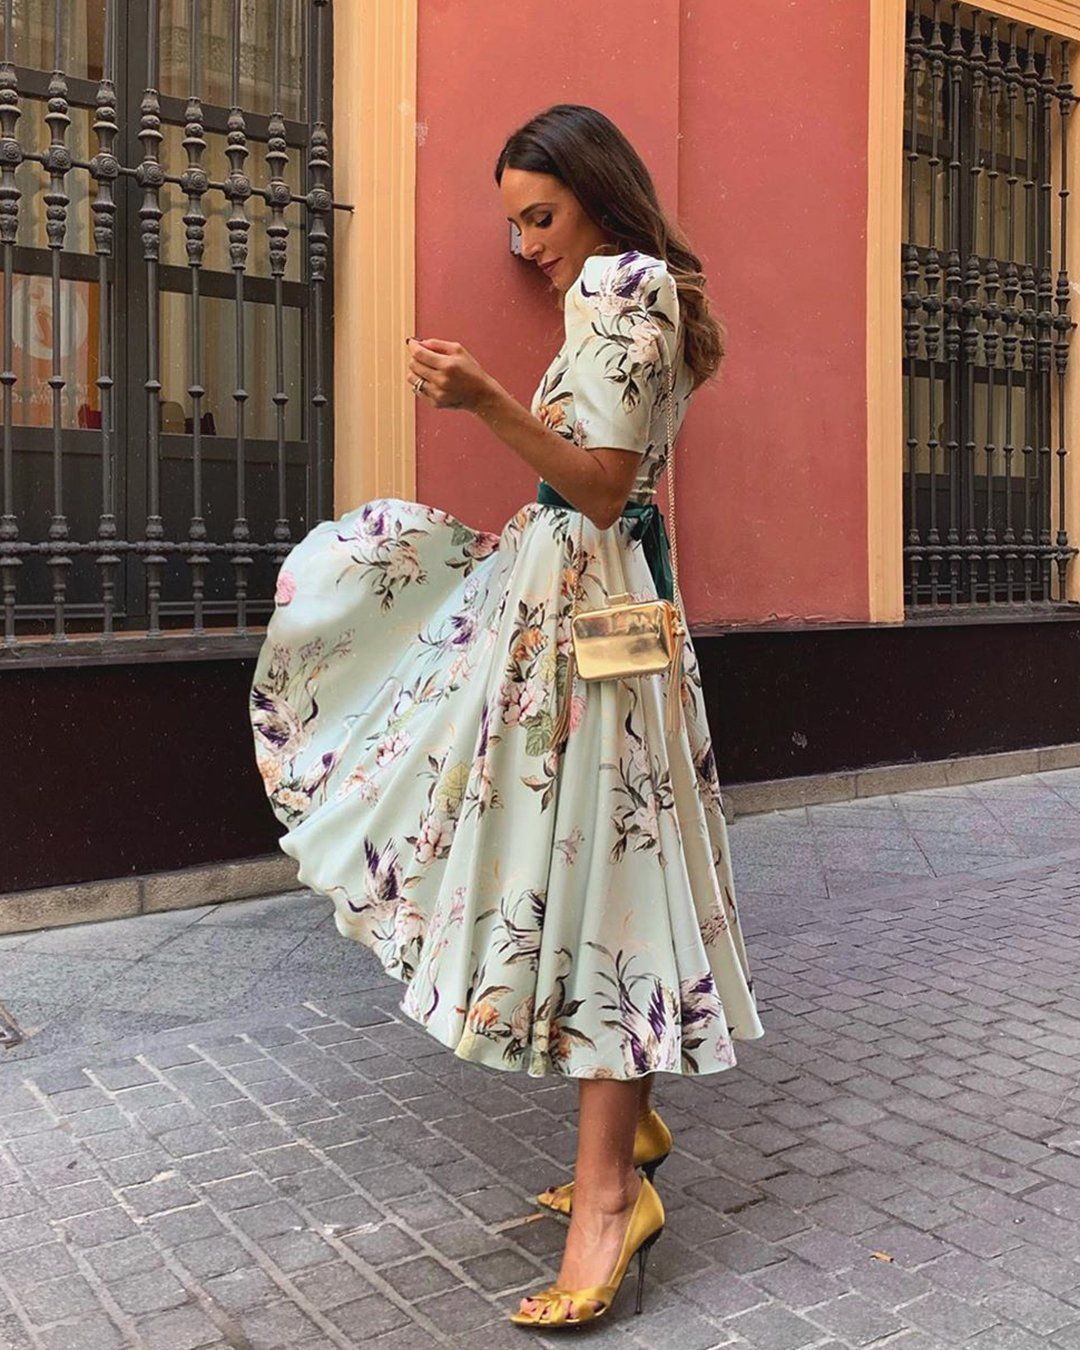 30 Wedding Guest Dresses For Every Seasons Style Wedding Guest Dress Spring Wedding Guest Dress Winter Wedding Outfits [ 1350 x 1080 Pixel ]